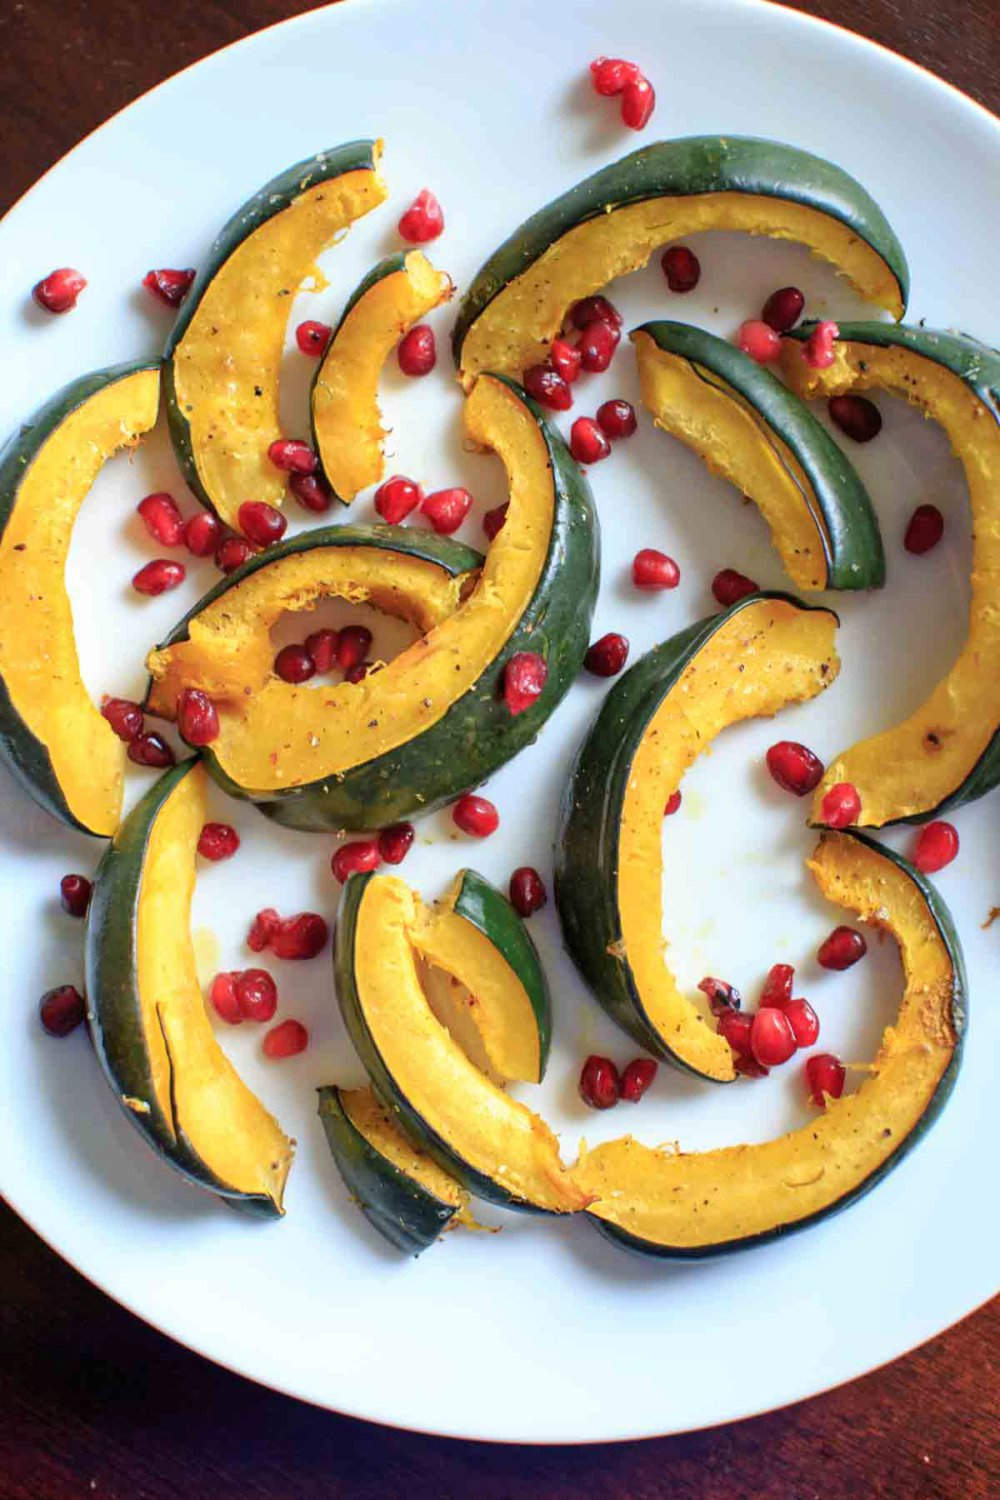 Roasted Acorn Squash with Pomegranate Seeds